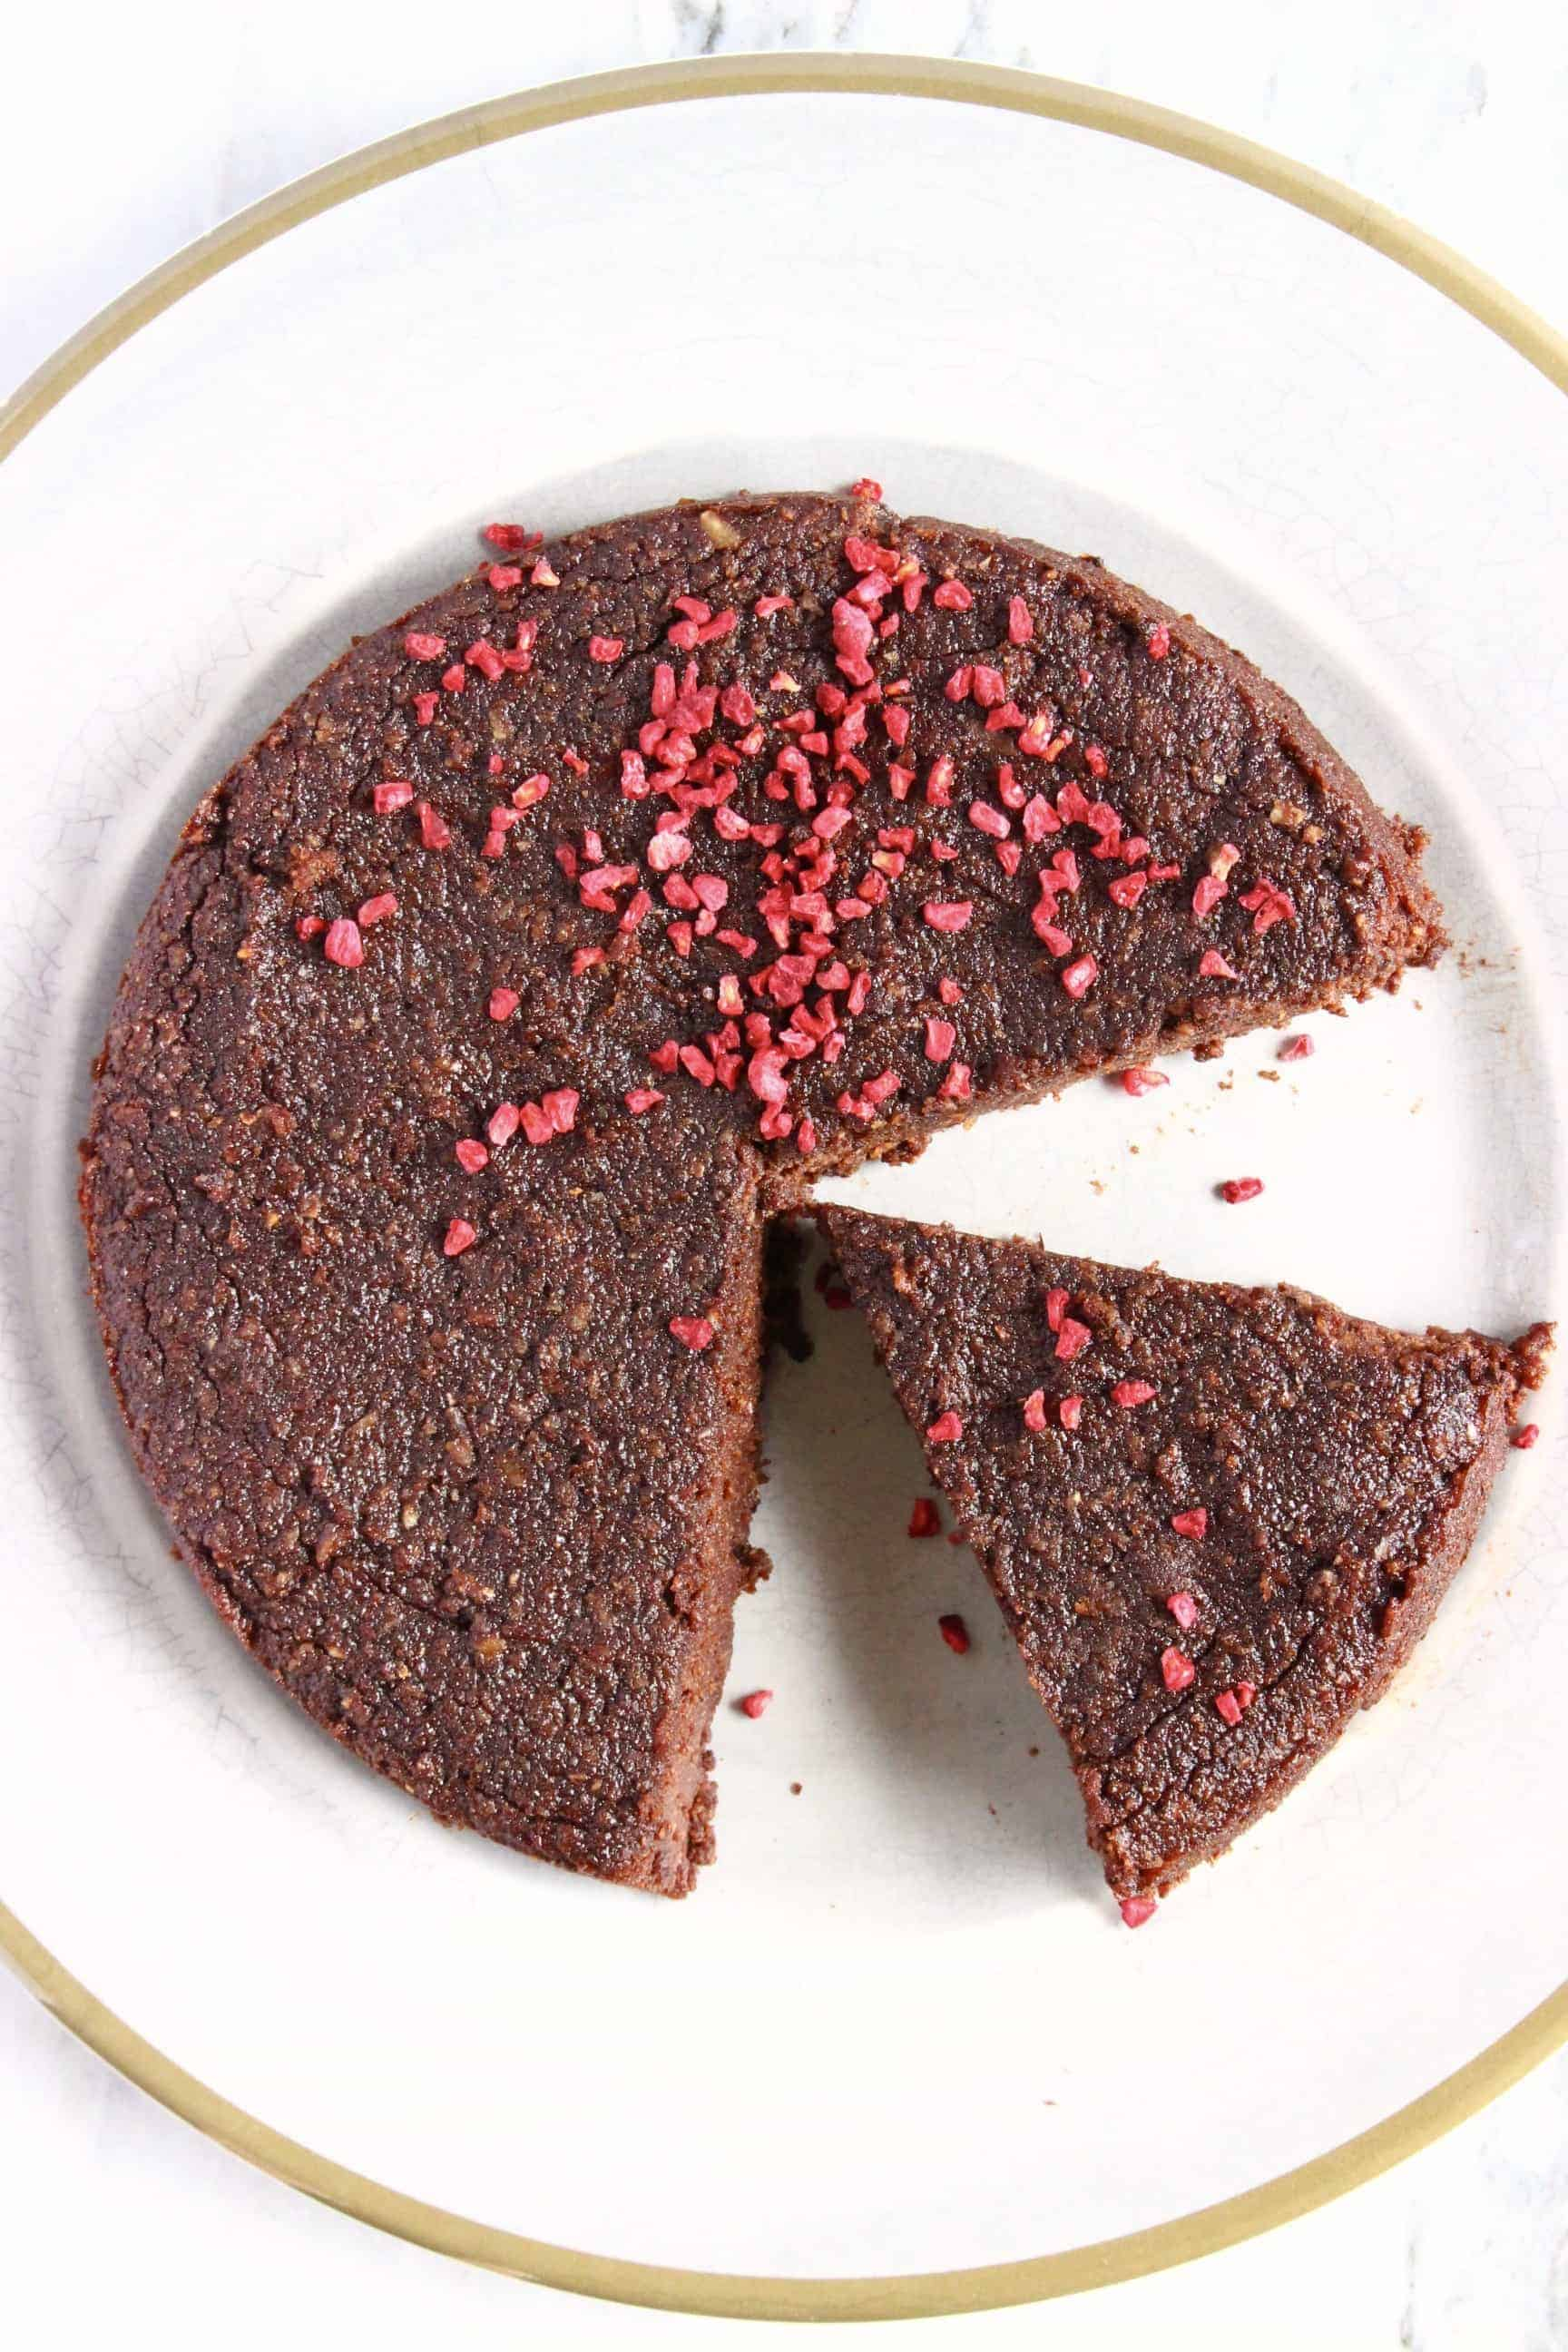 A gluten-free vegan chocolate torte with slices cut out of it on a plate